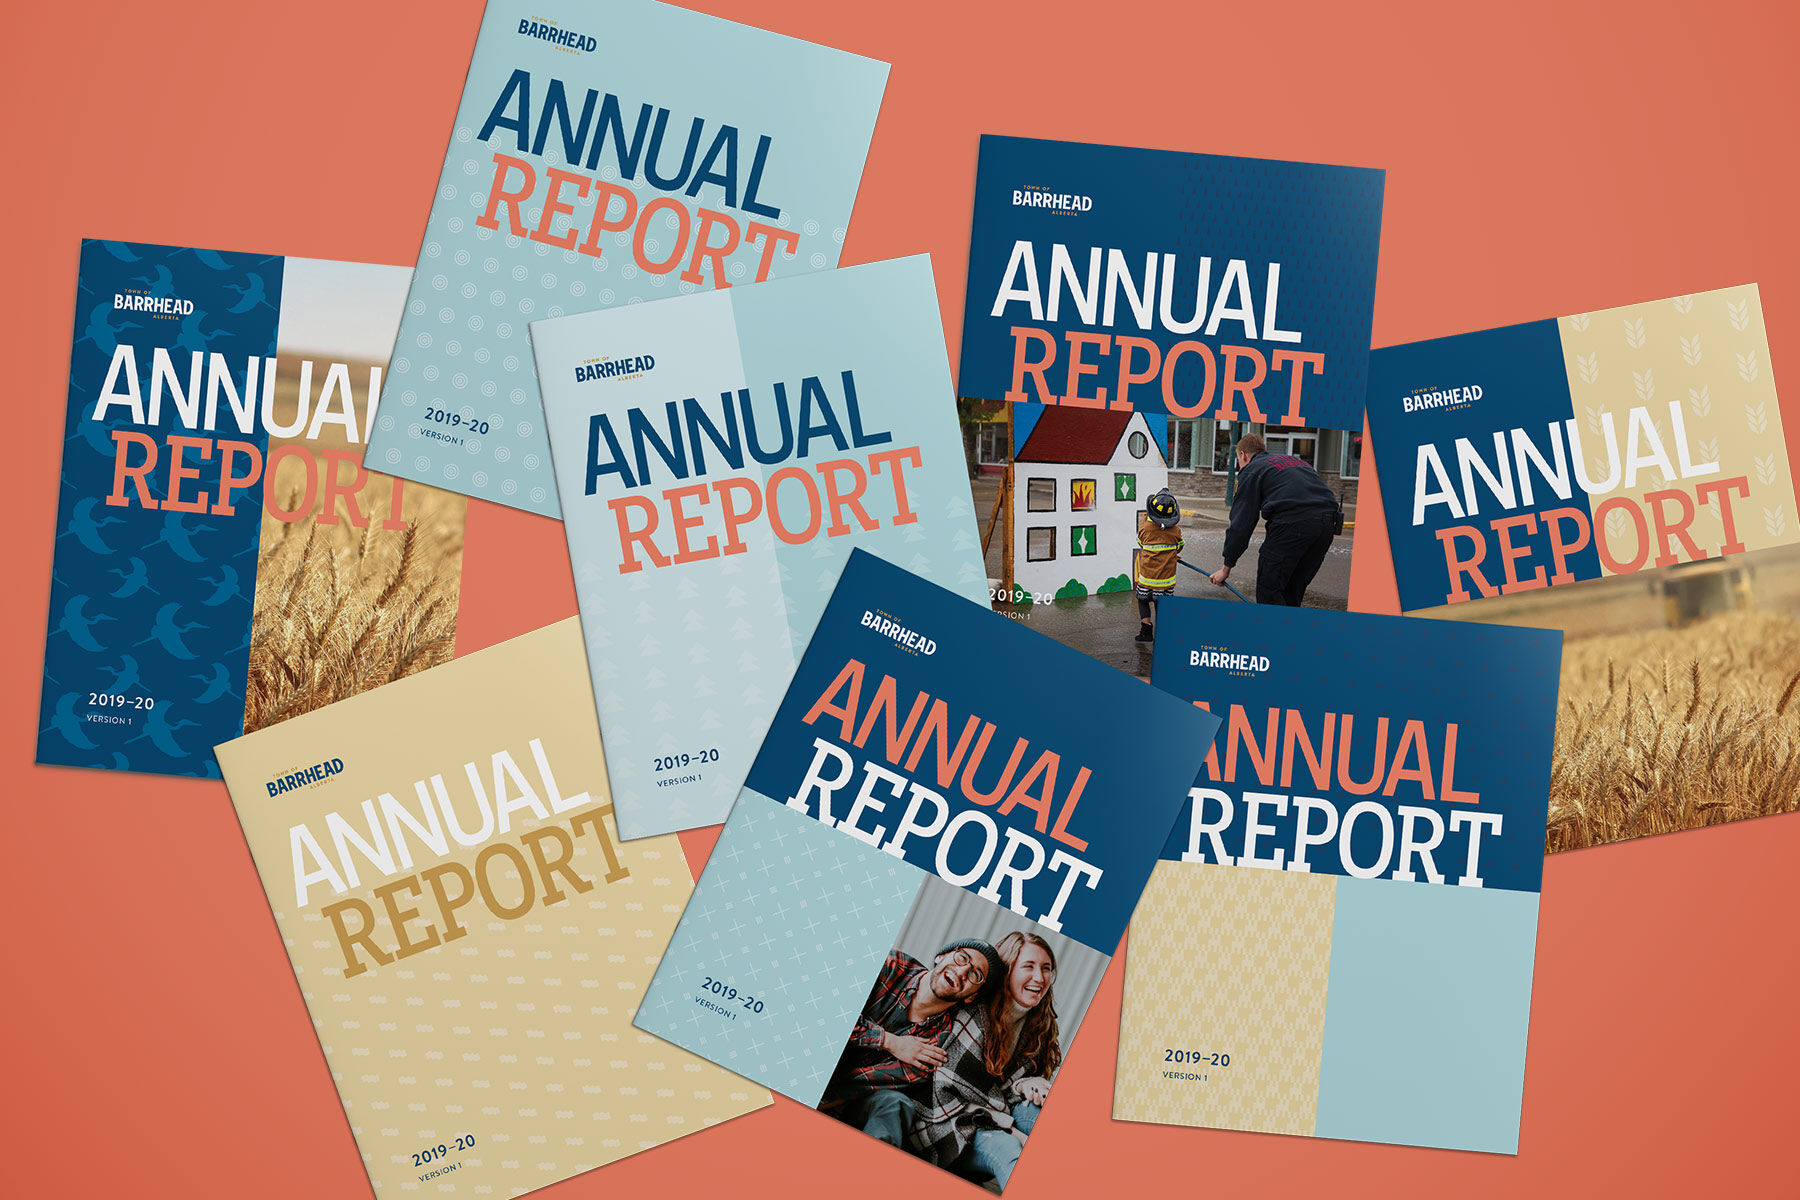 Annual Report designed by Vancouver's Ion Brand Design